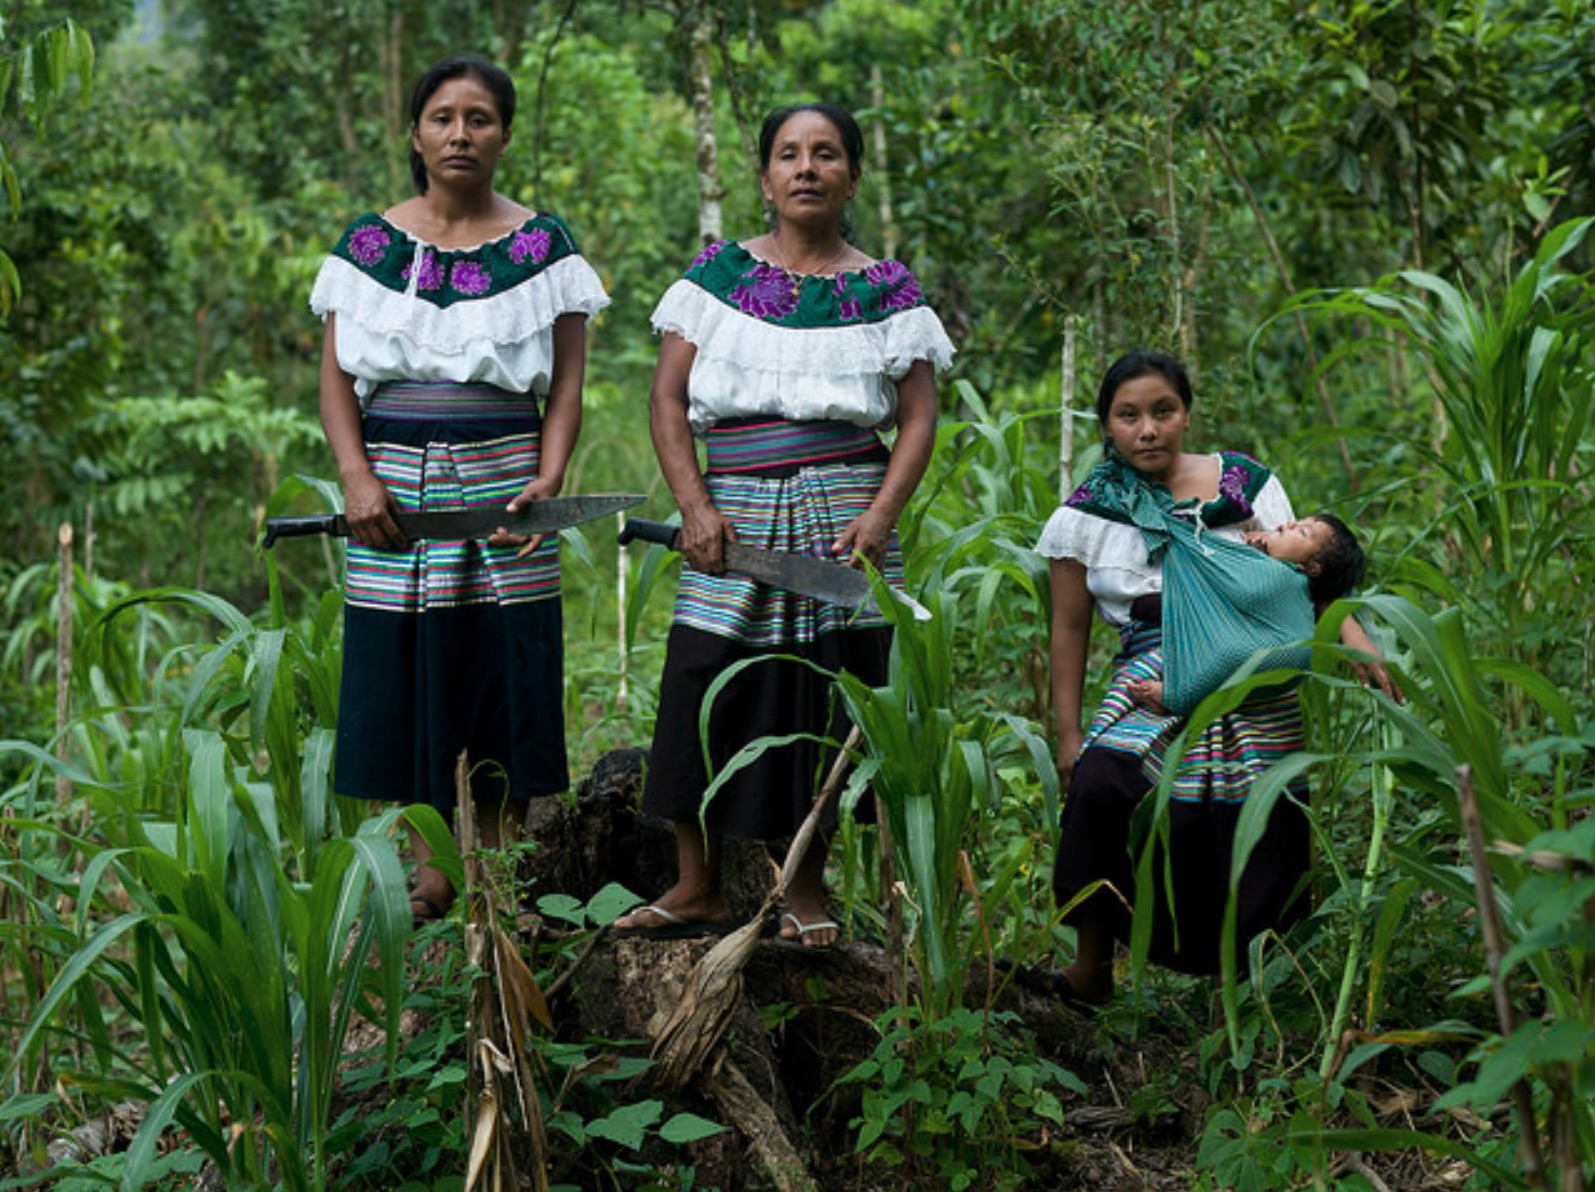 Mexican corn farming women, journal of wild culture, ©2020